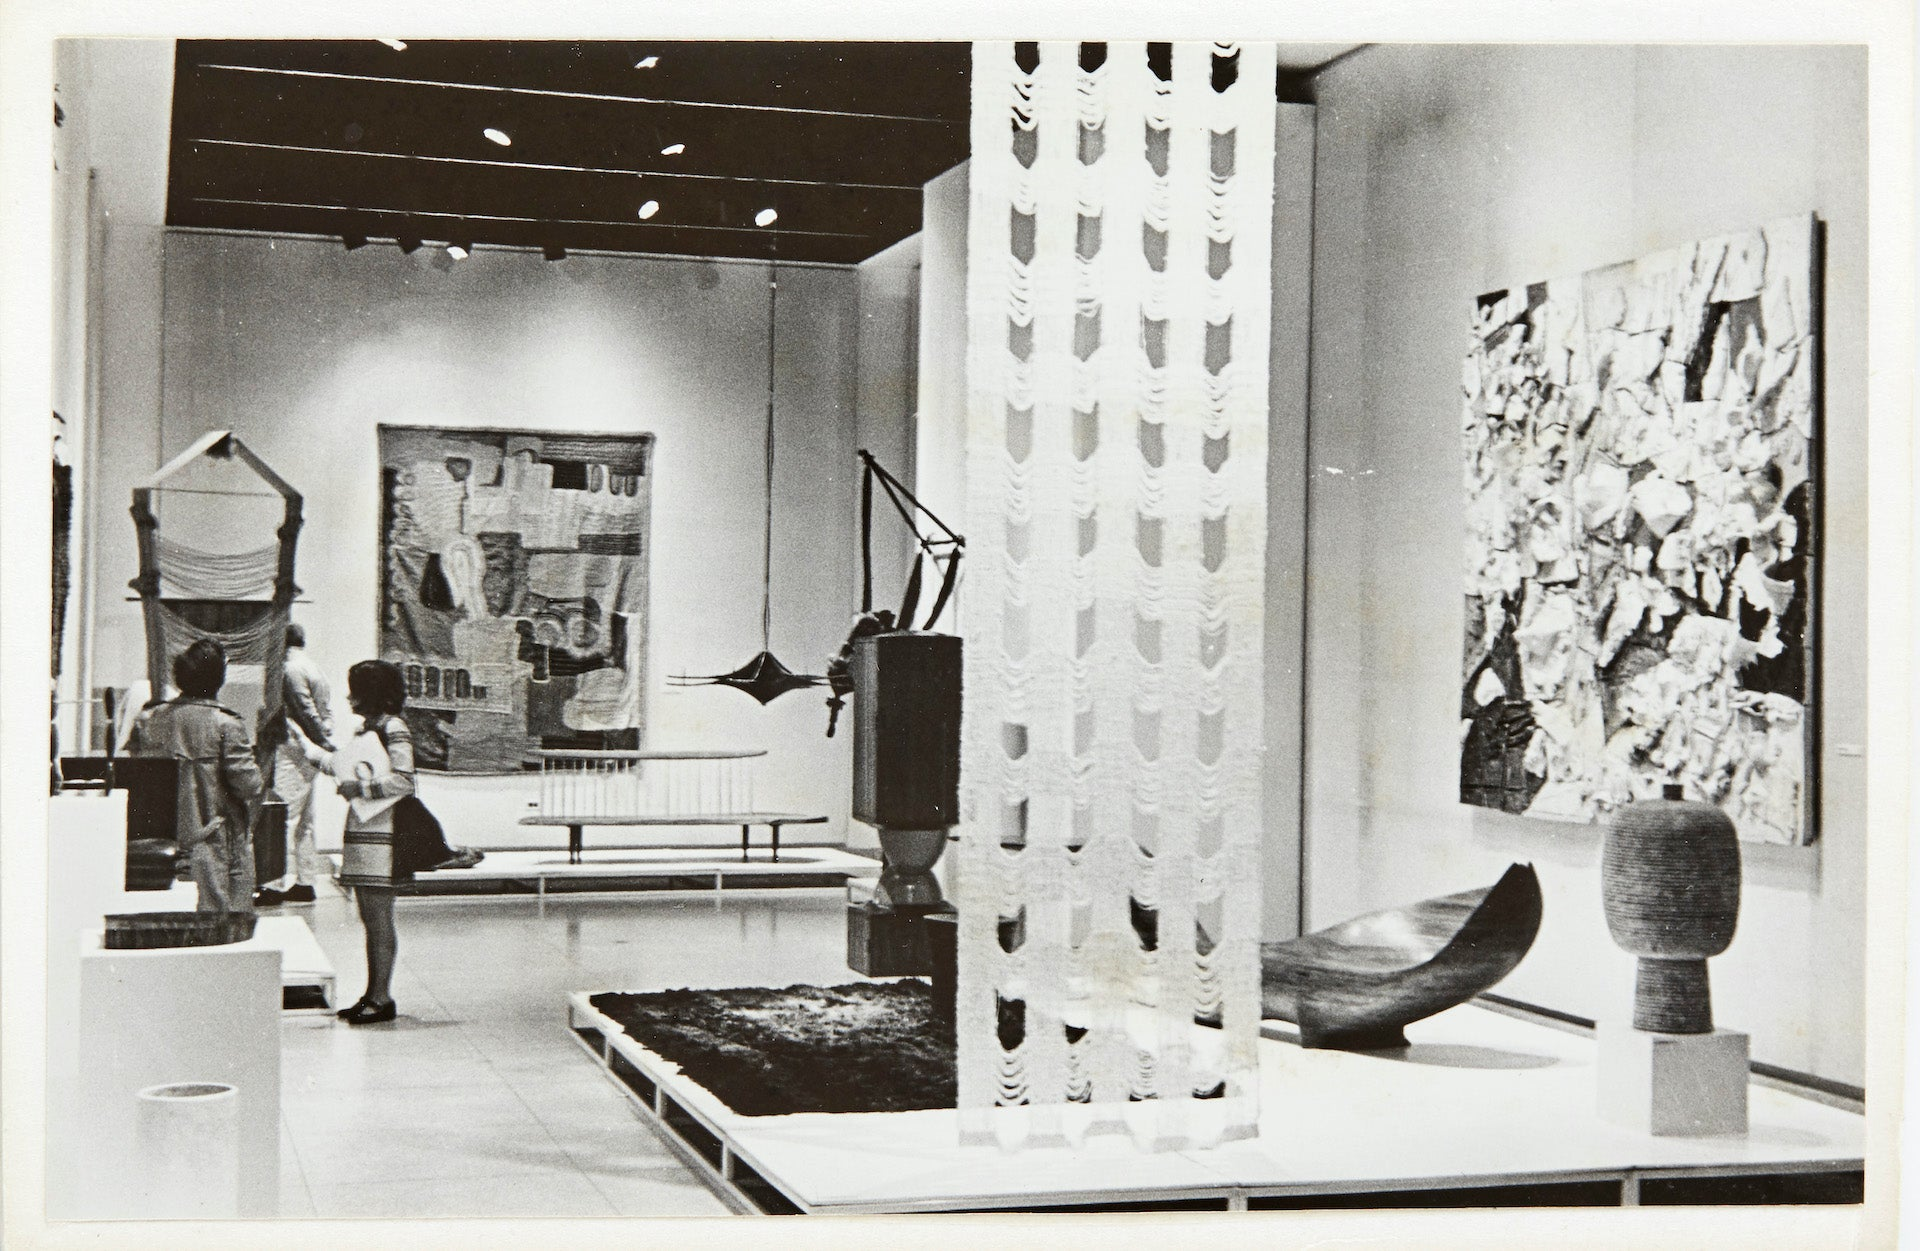 Exhibition view of the original Objects: USA show in 1969 at the Smithsonian American Art Museum, from a photo album from the Estate of Margret Craver. Photo courtesy of R & Company